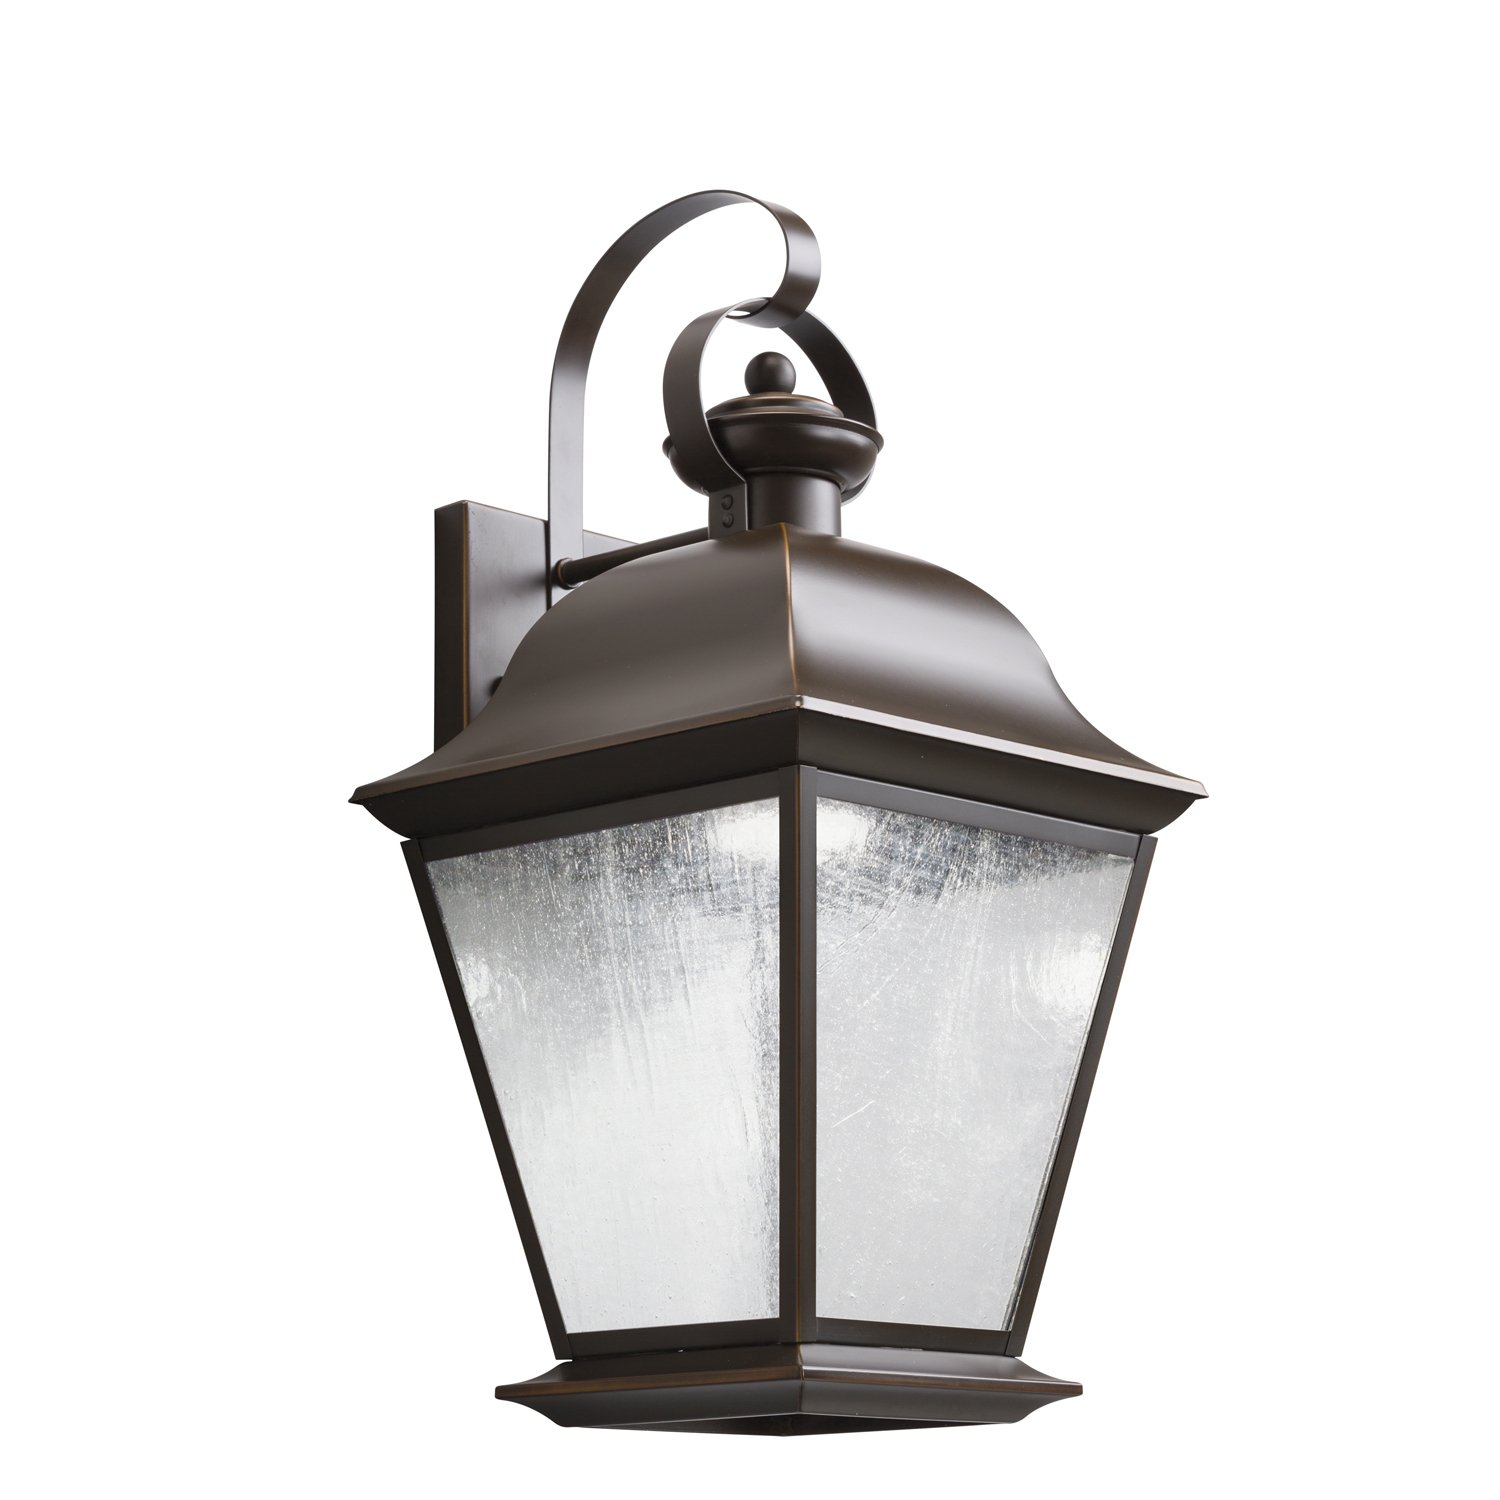 Outdoor led wall lantern olde bronze wall porch lights amazon com - Kichler Lighting 9709ozled Mount Vernon 20in 10w 3000k Led Exterior Wall Lantern Olde Bronze Finish With Etched Seedy Glass Amazon Com